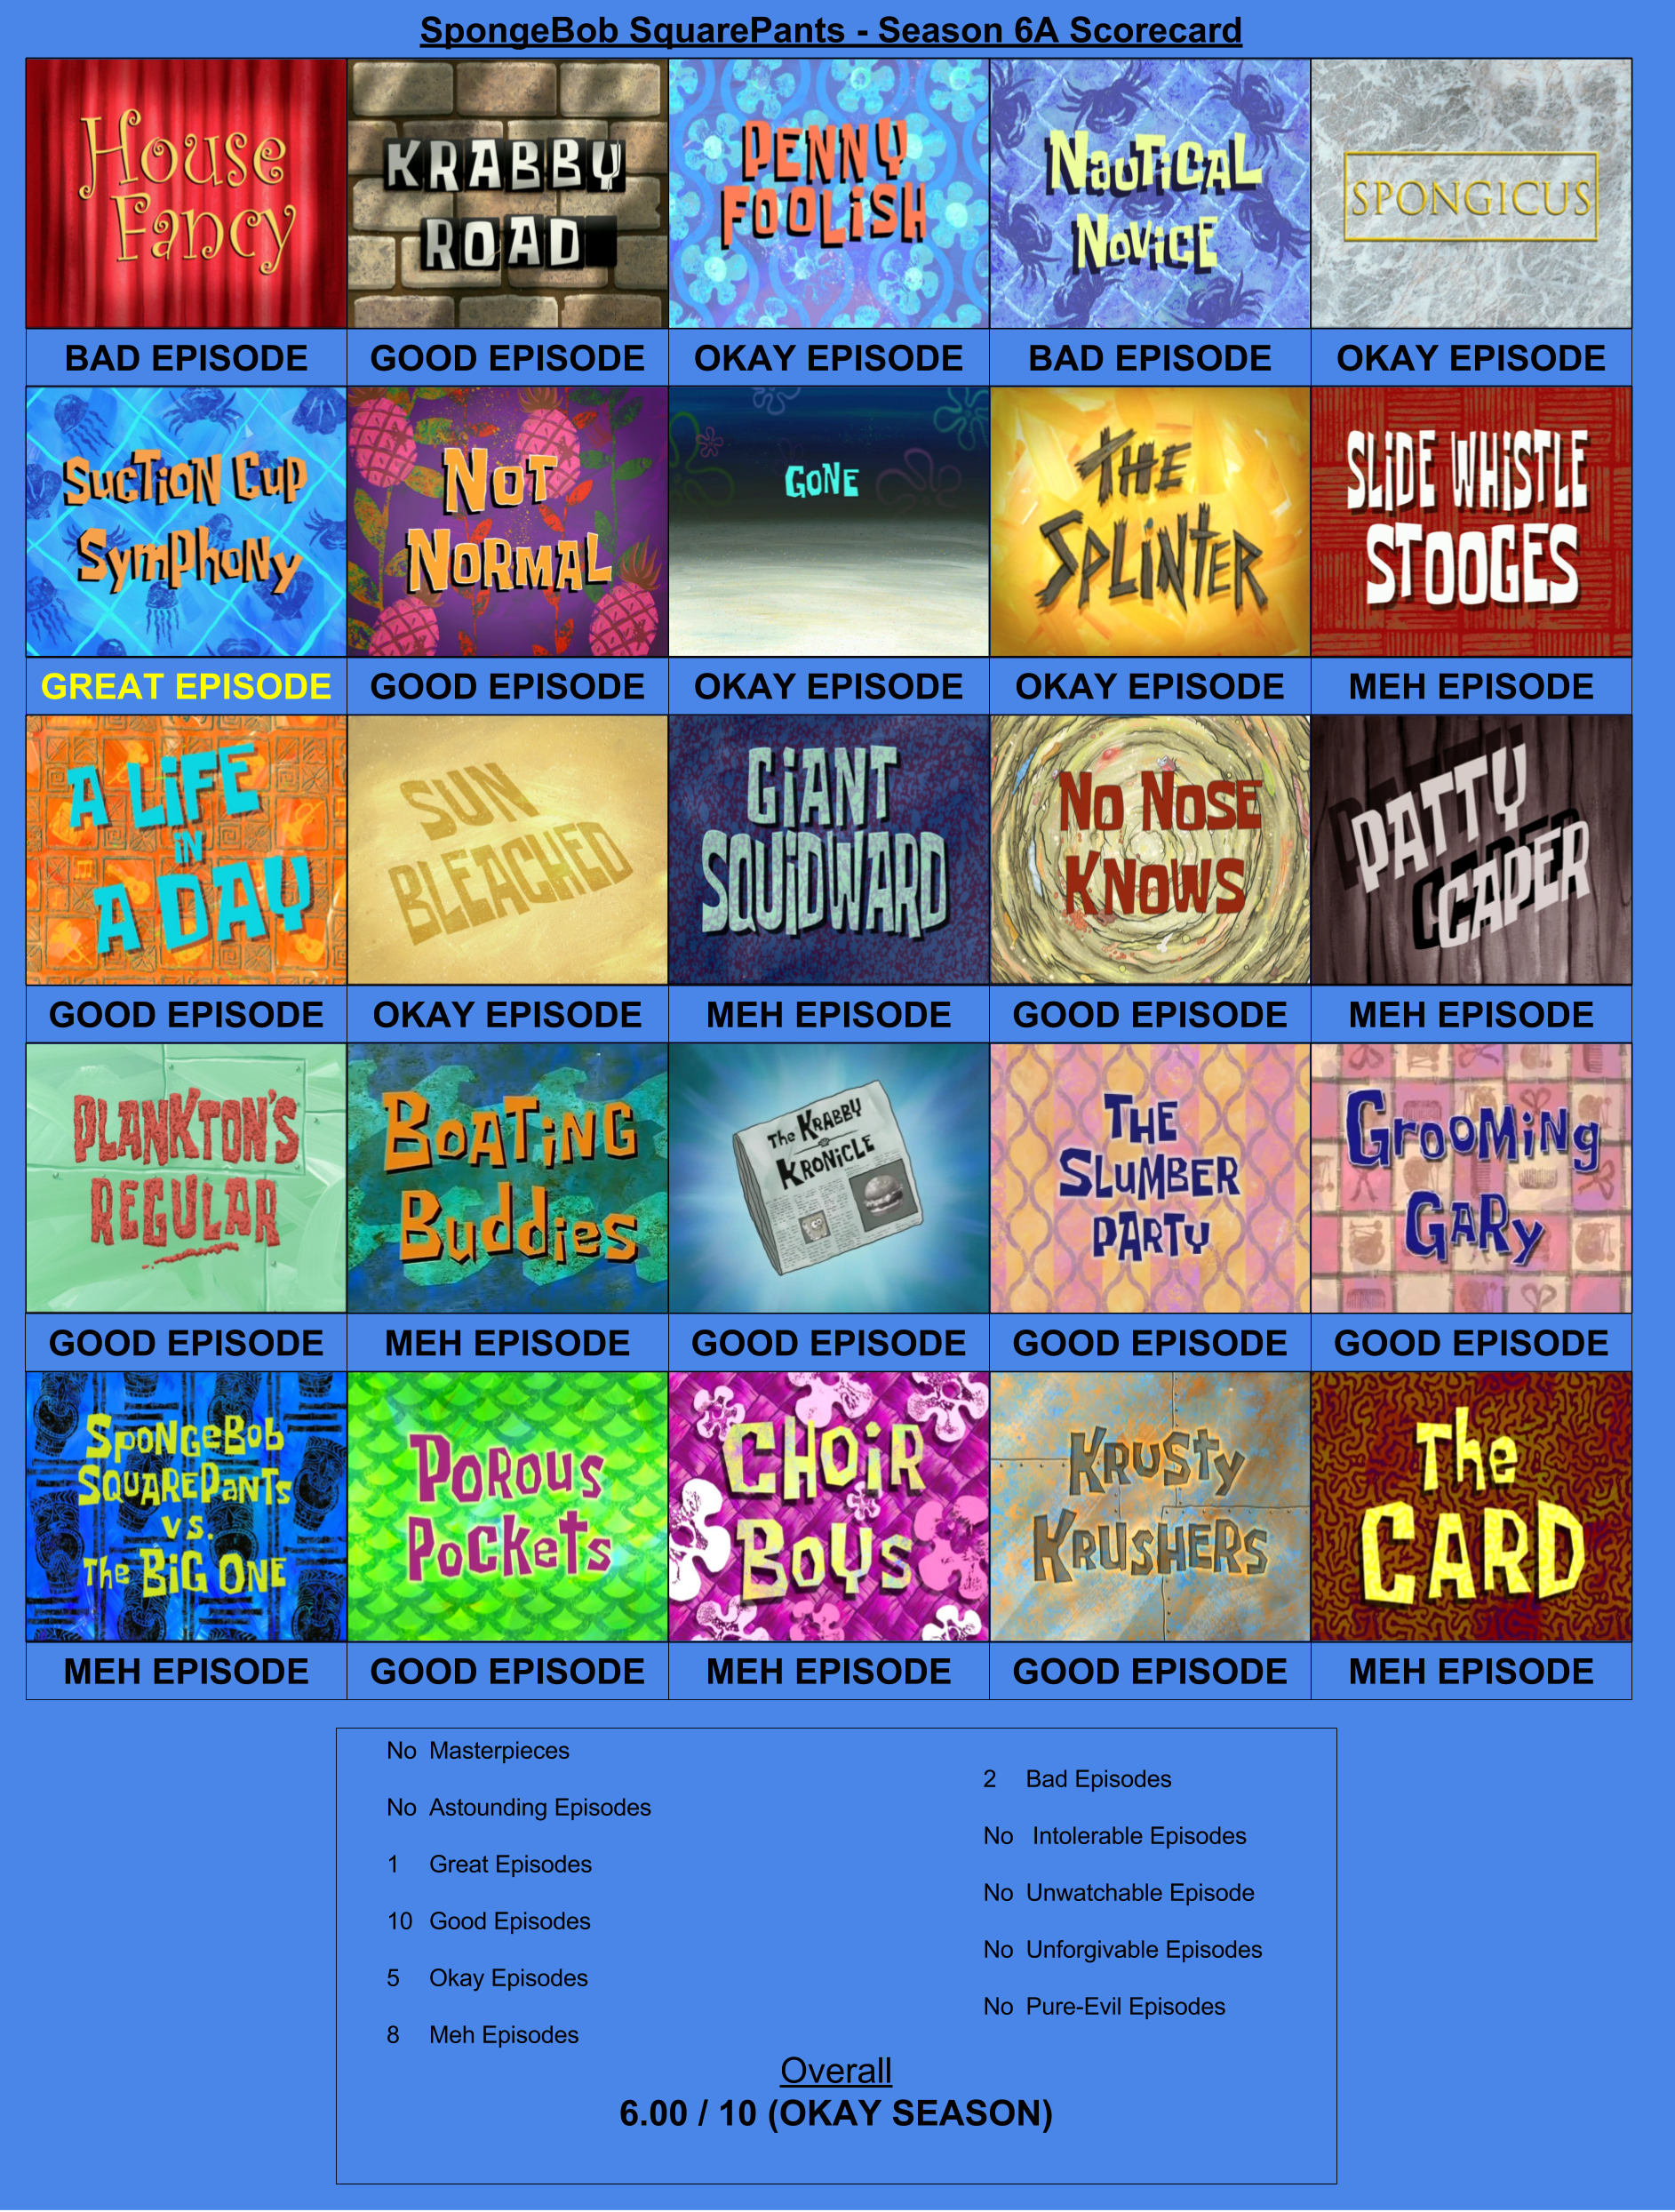 spongebob squarepants season 6a scorecard by teamrocketrockin on